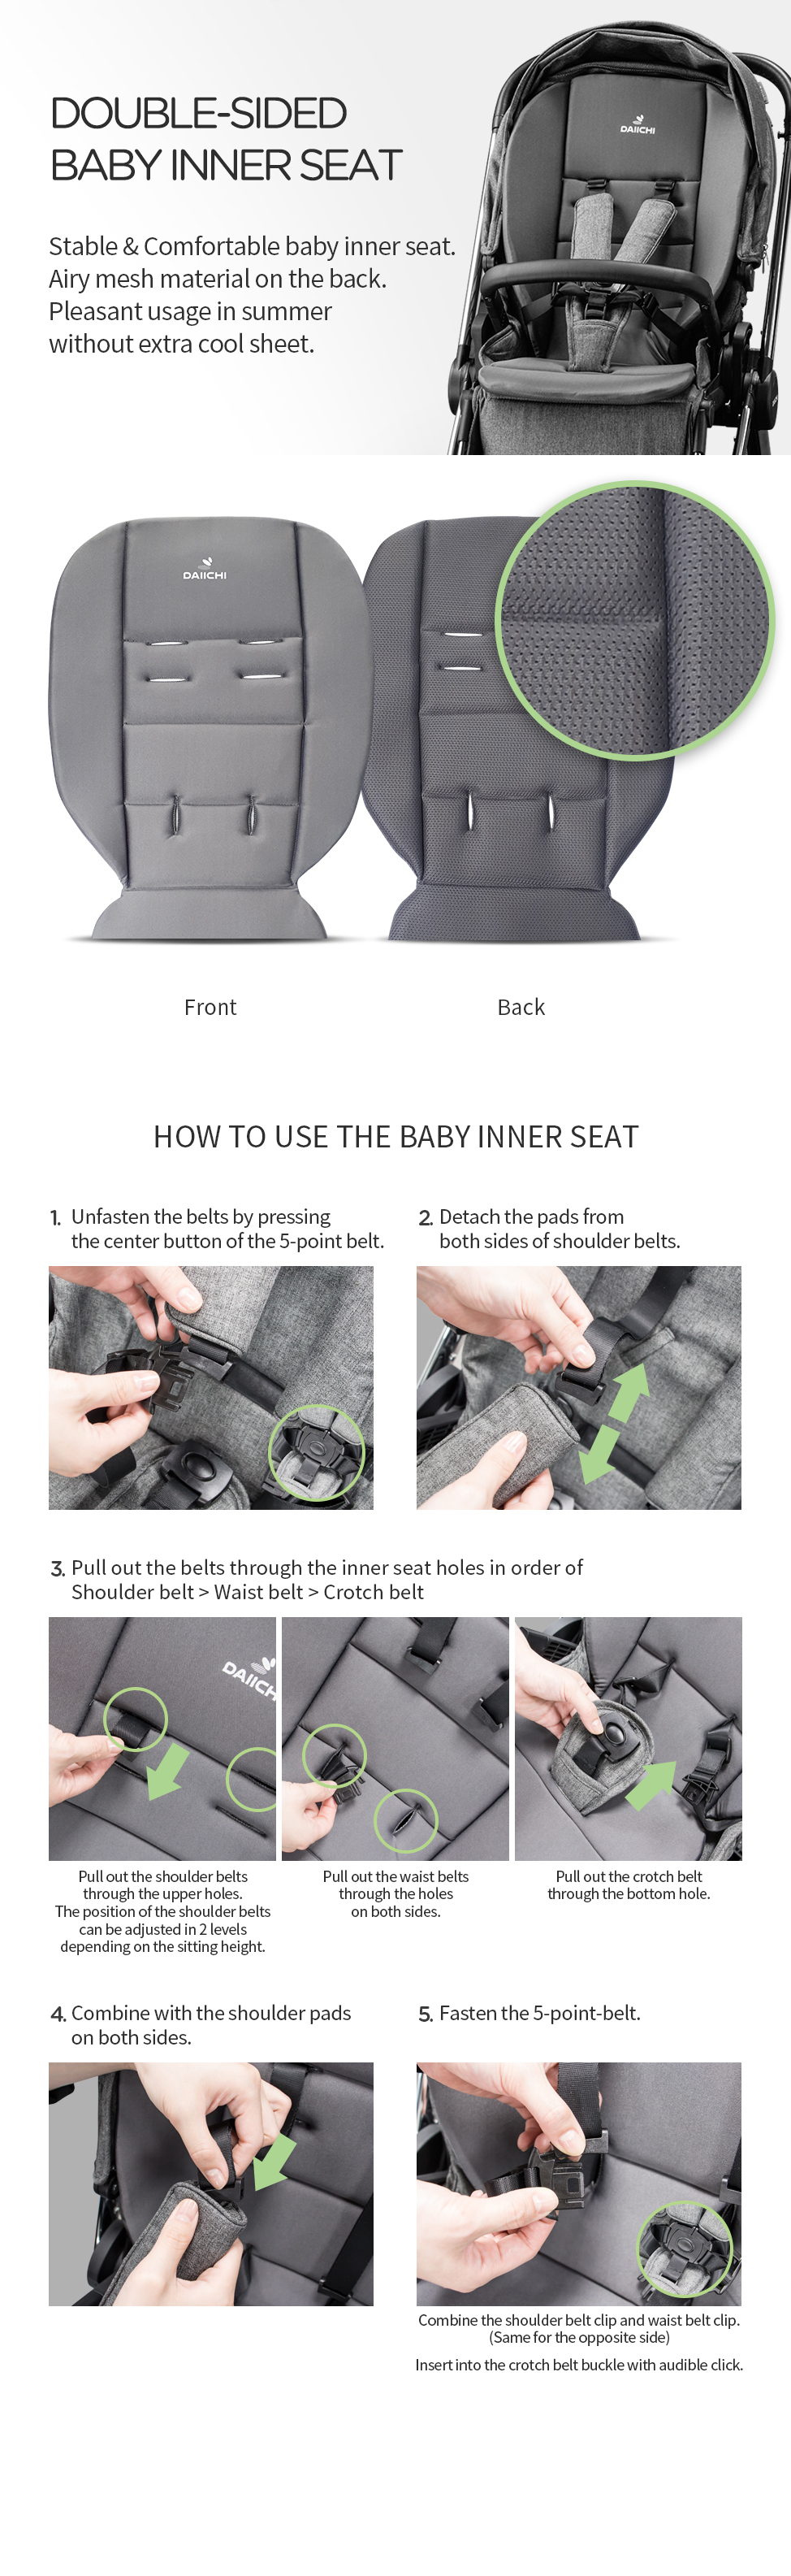 DOUBLE-SIDED BABY INNER SEAT. Airy mesh material on the back Pleasant usage in summer without extra cool sheet.